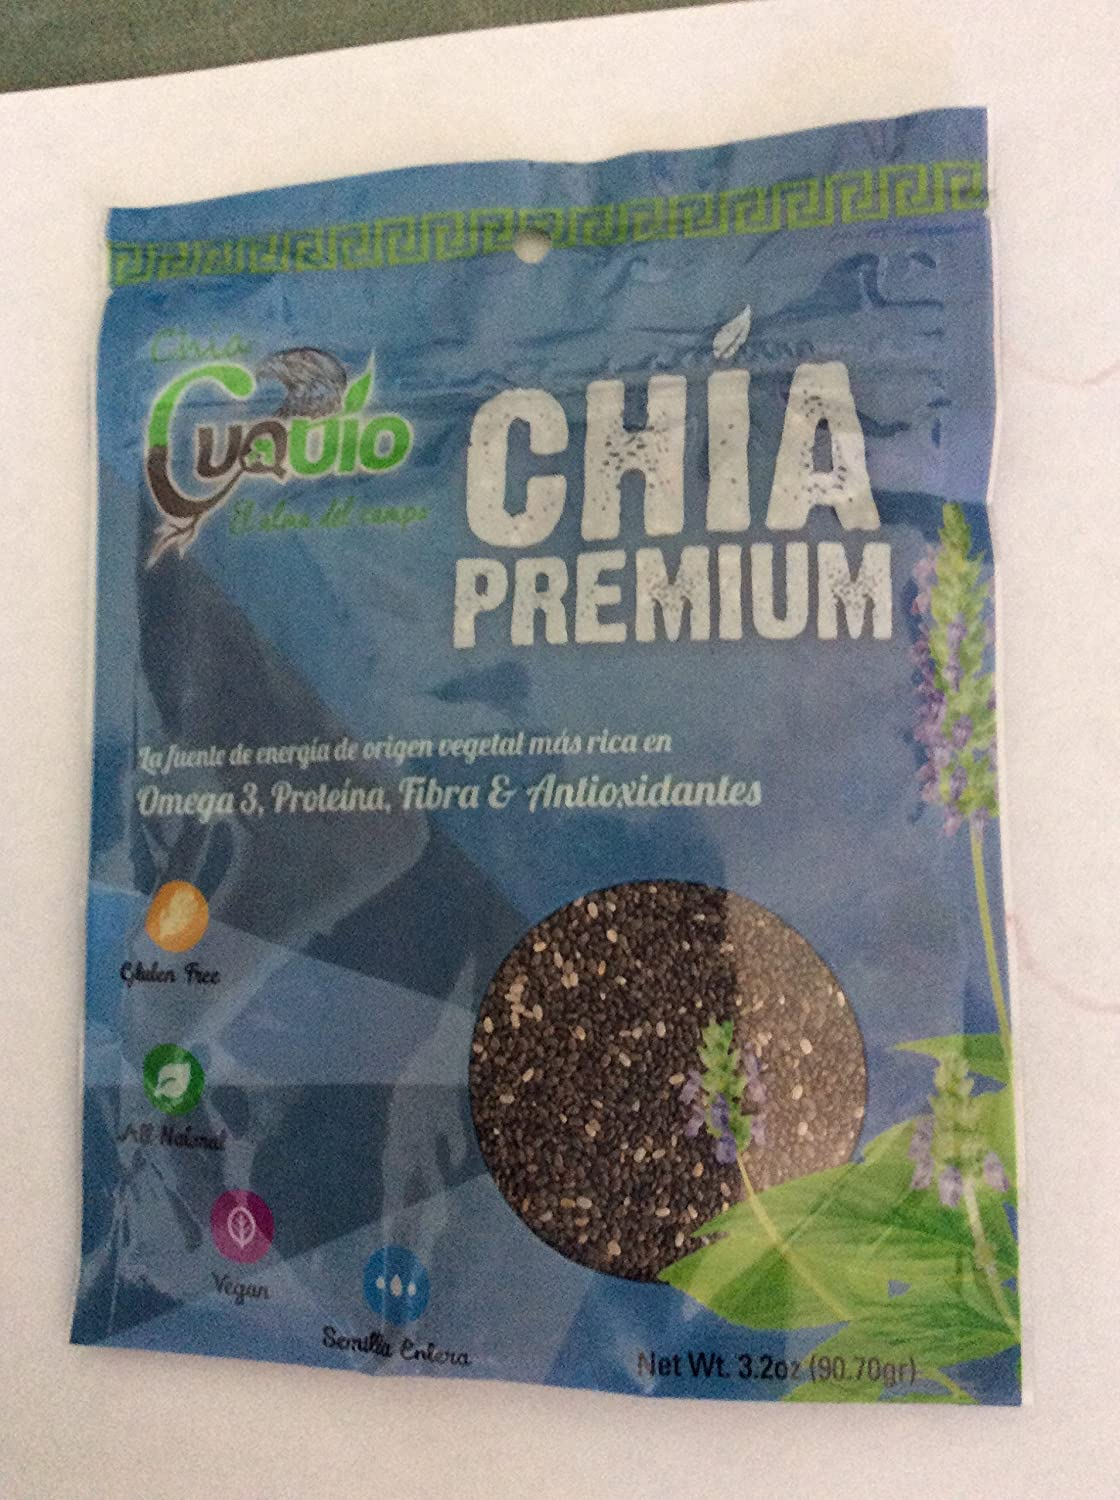 Amazon.com : Cuquio Premium Chia Seeds 2 Lbs Packaged In 10 Small, Convenient Packets! Throw In Your Purse/Gym Bag, 3.2 oz ZipLock Pkgs! All Natural, Vegan, ...